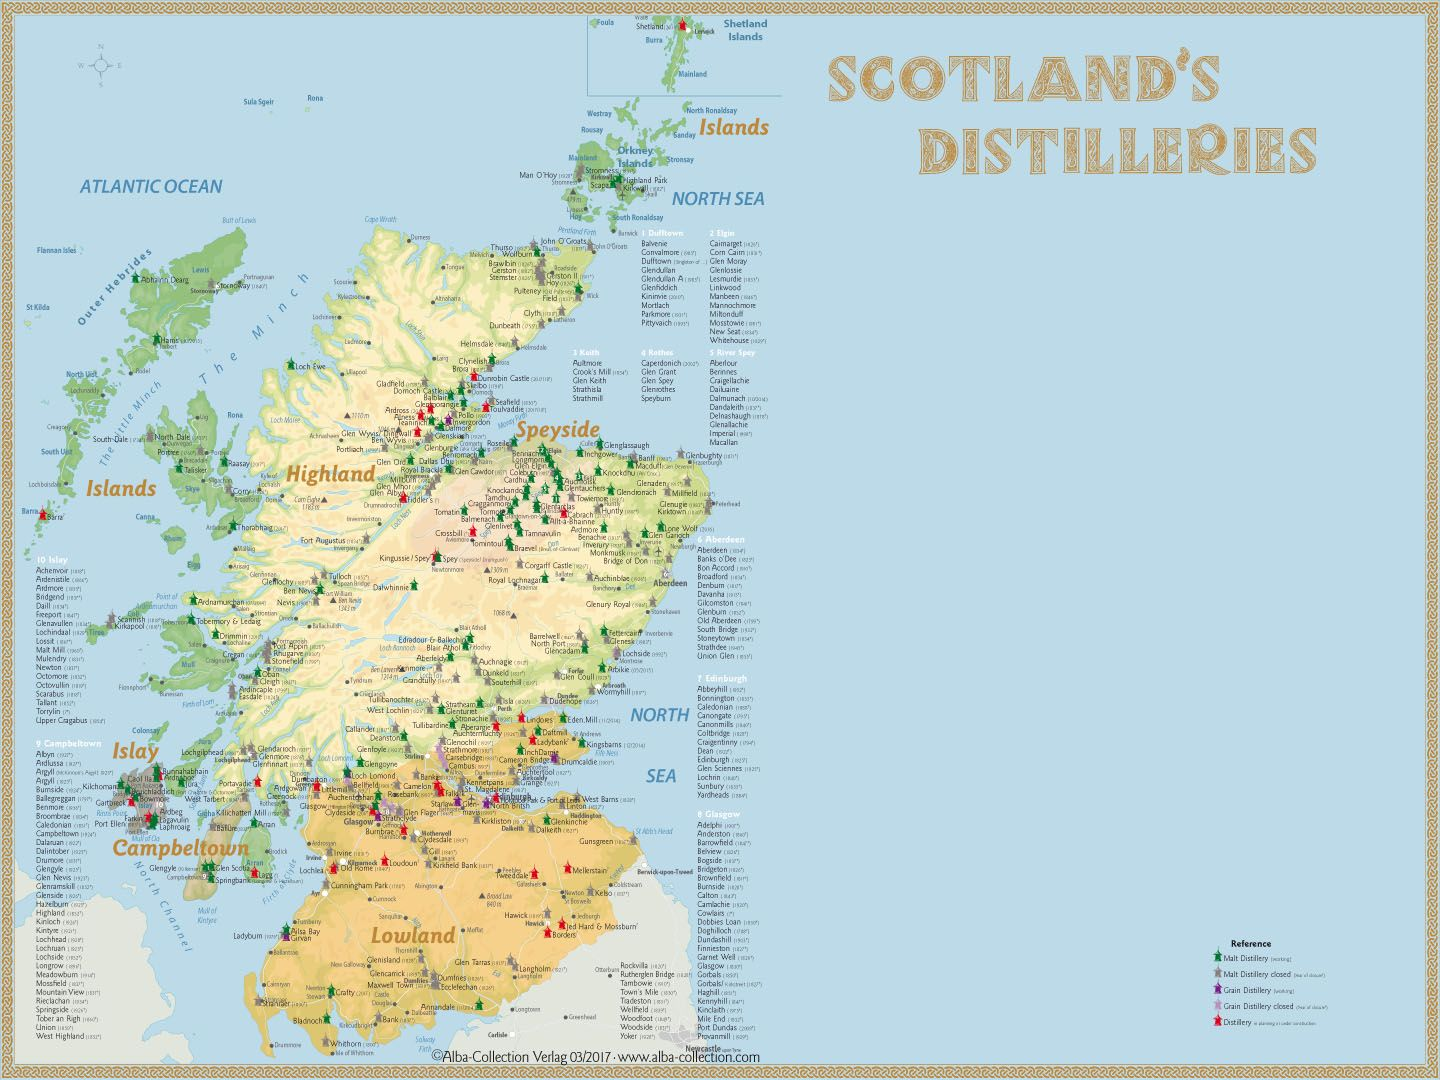 Whisky Regions Of Scotland Chart 01 Complet Overview Www Alba